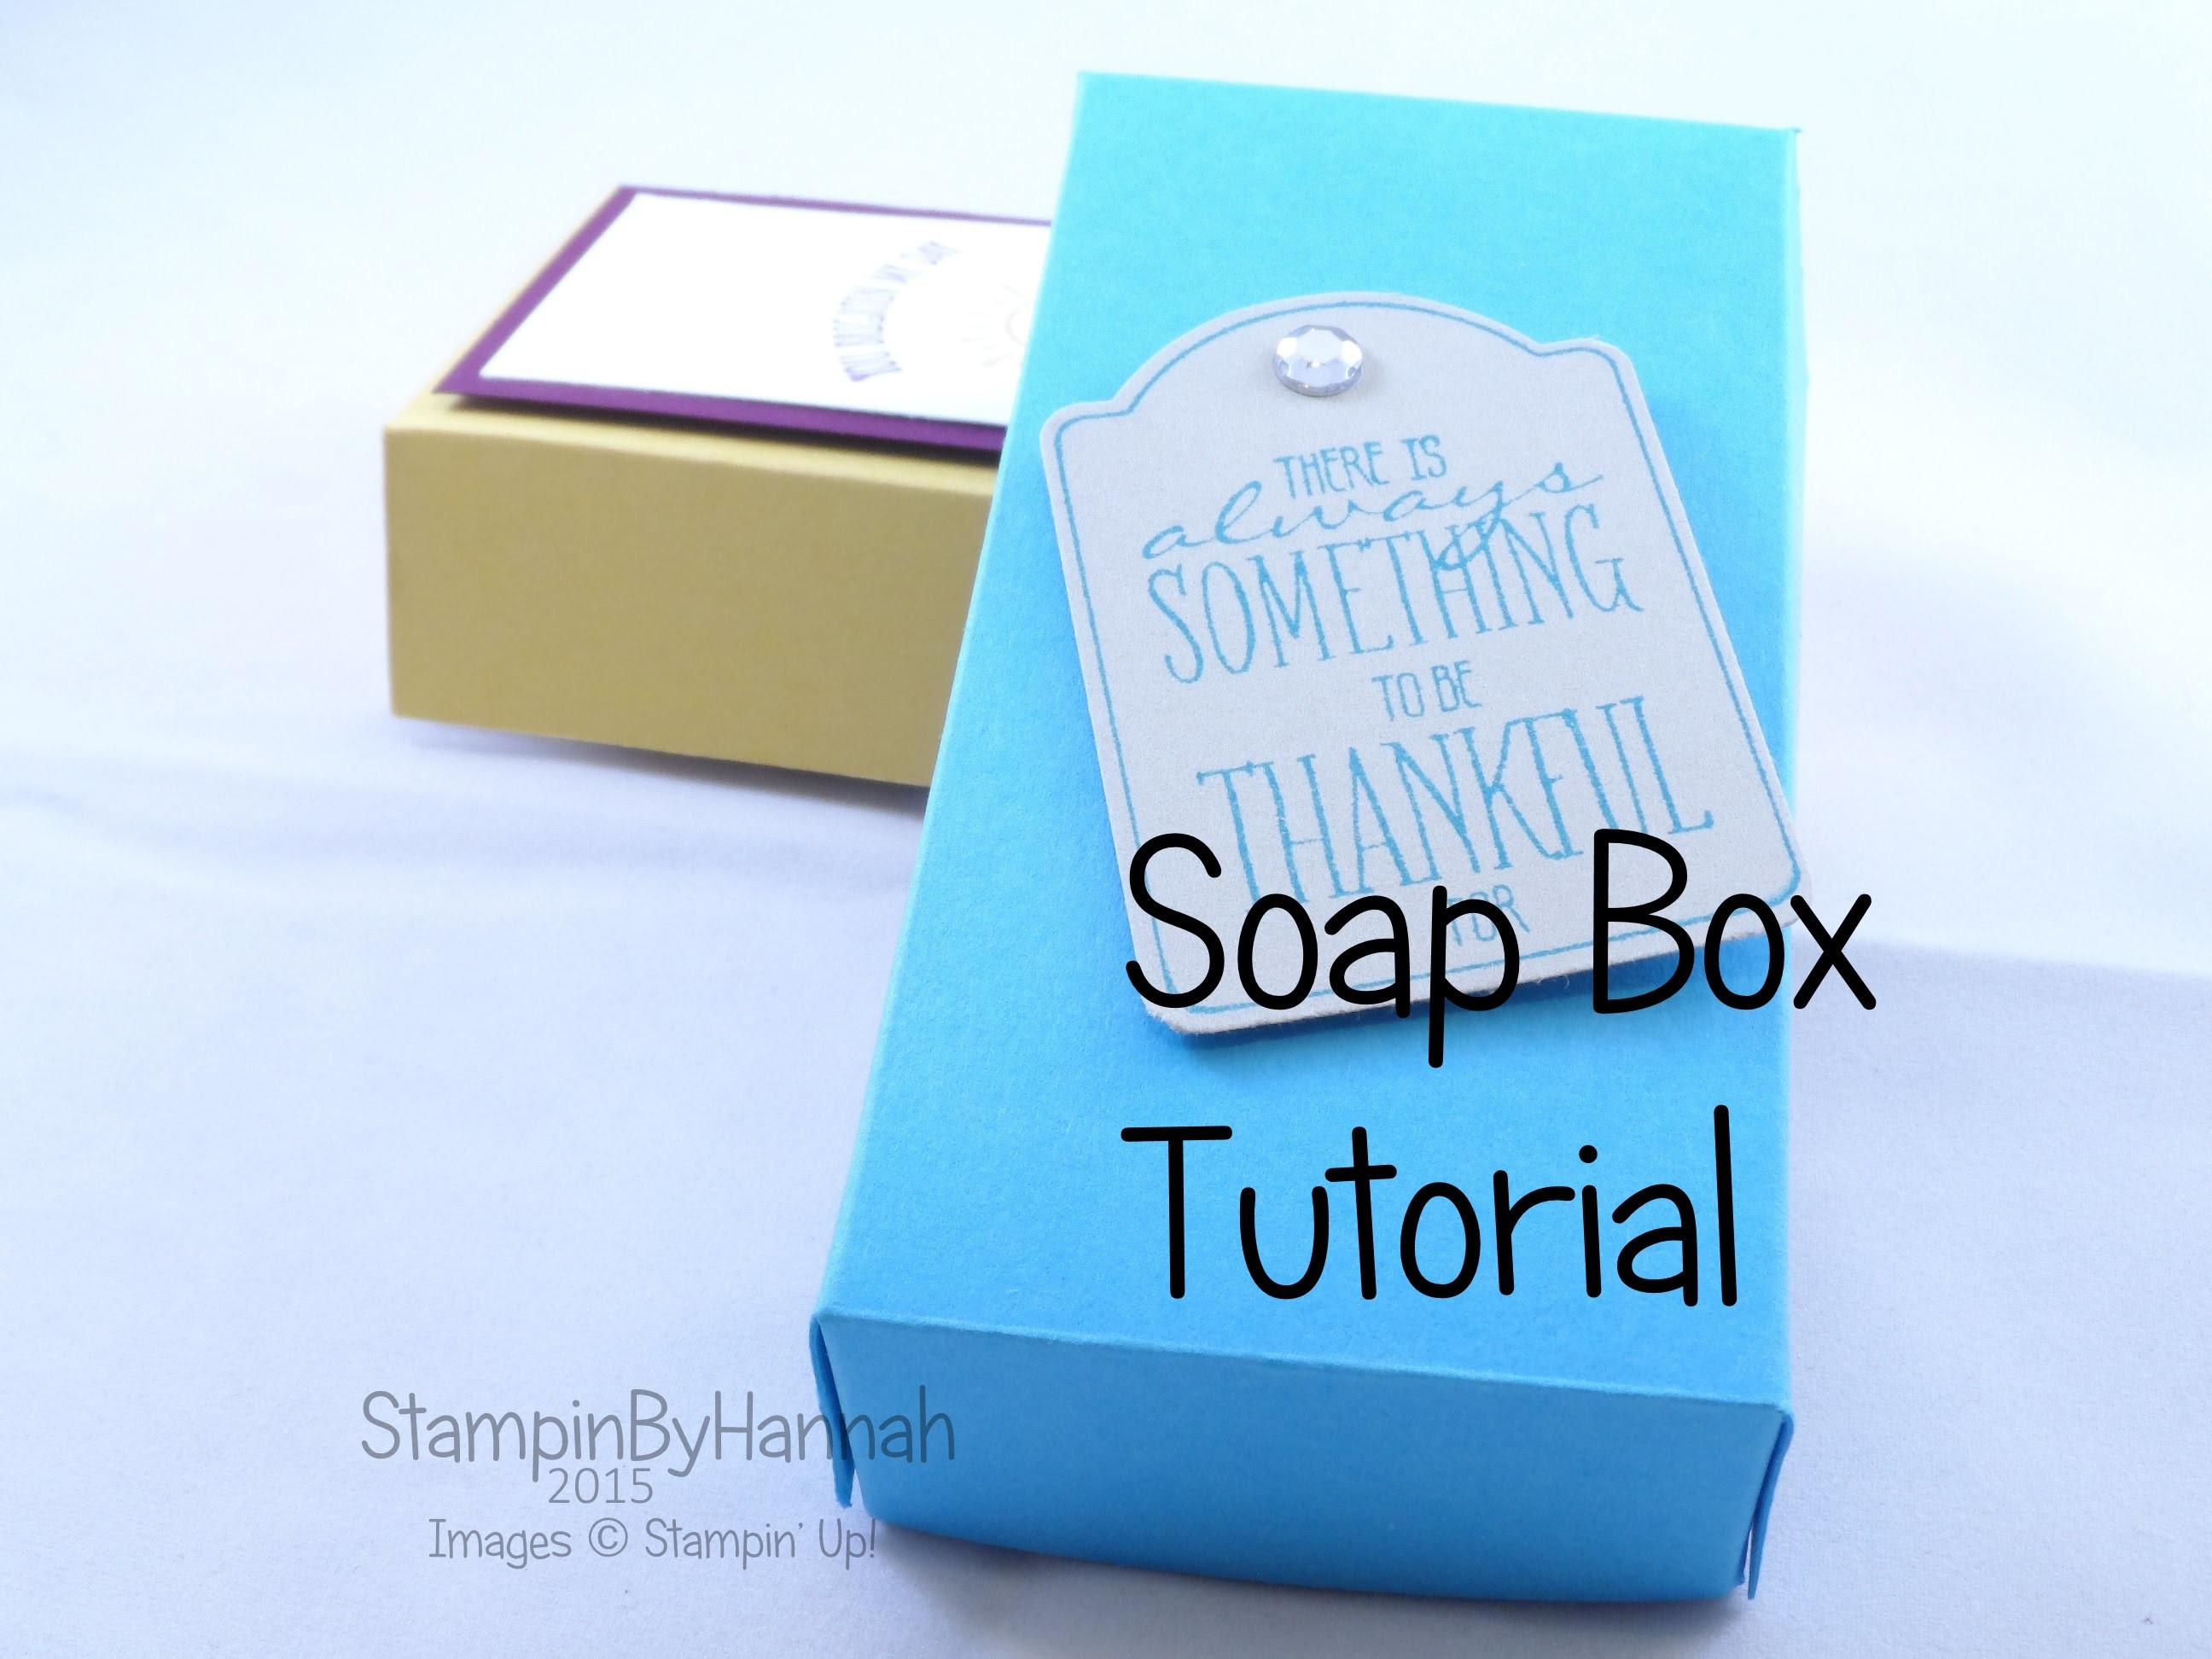 Soap Box Tutorial using Stampin' Up! UK products